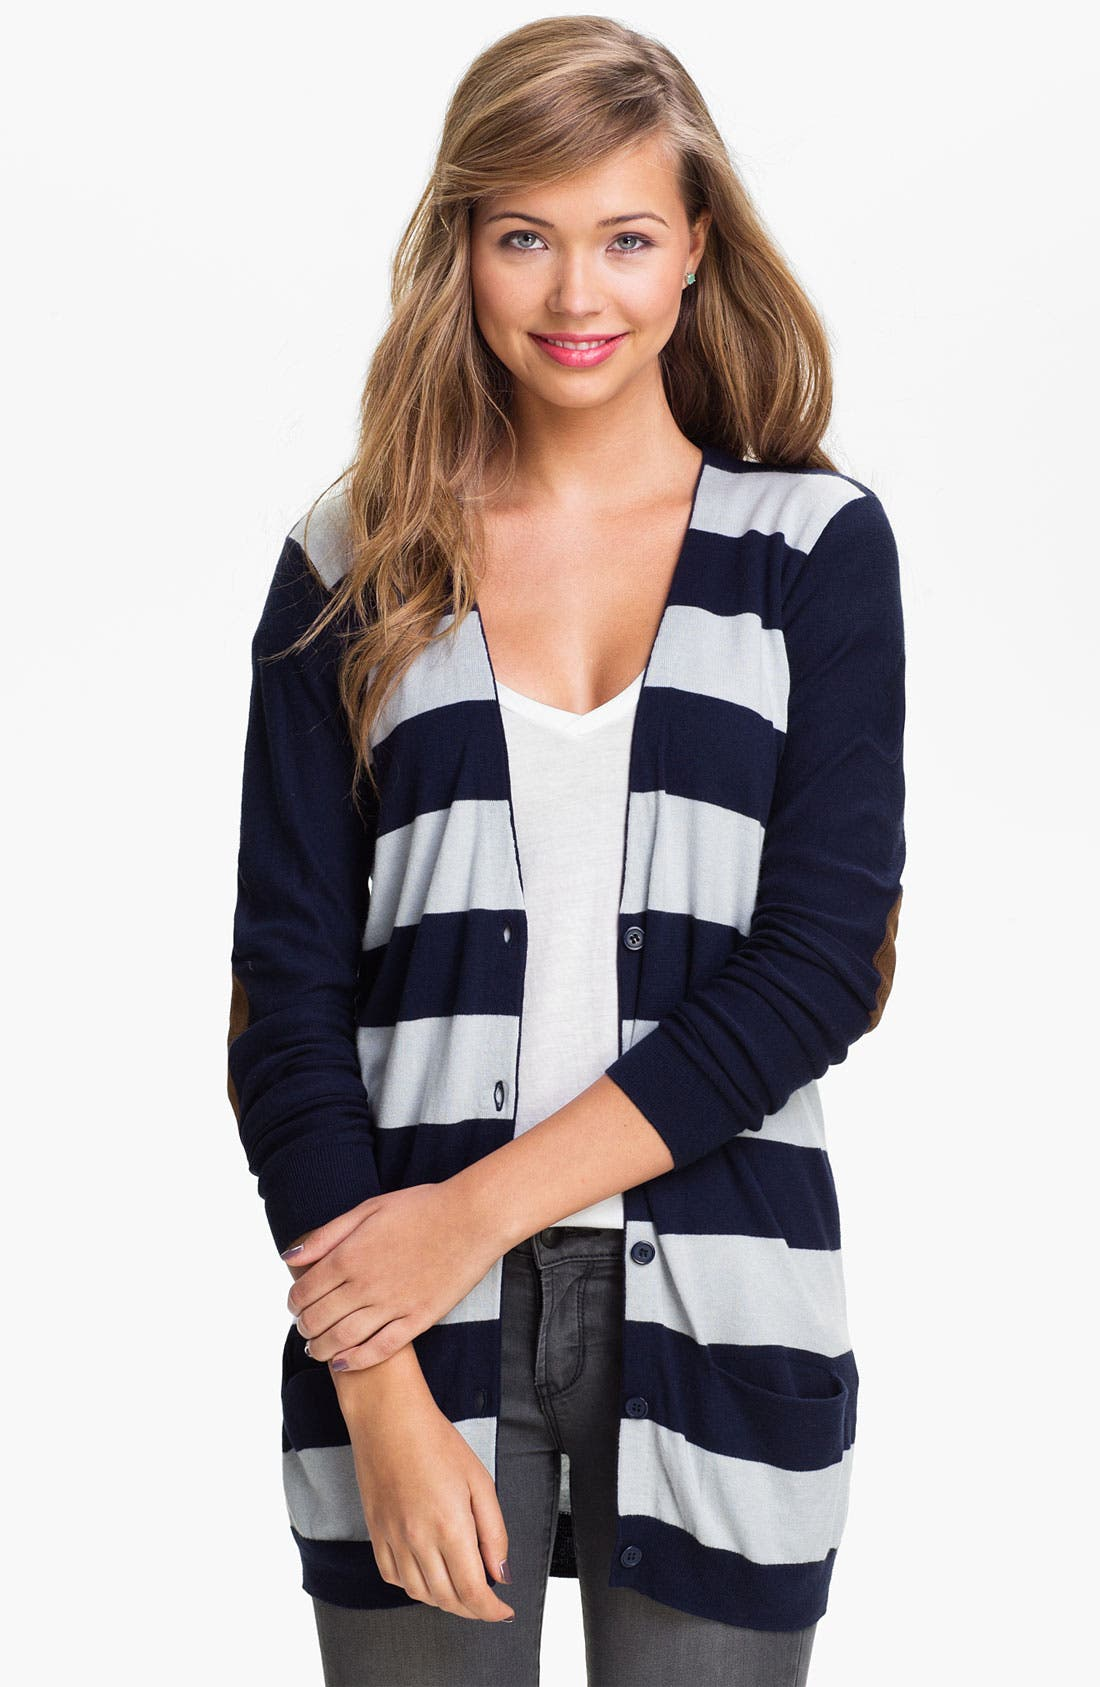 Alternate Image 1 Selected - BP. Rugby Stripe Cardigan (Juniors)